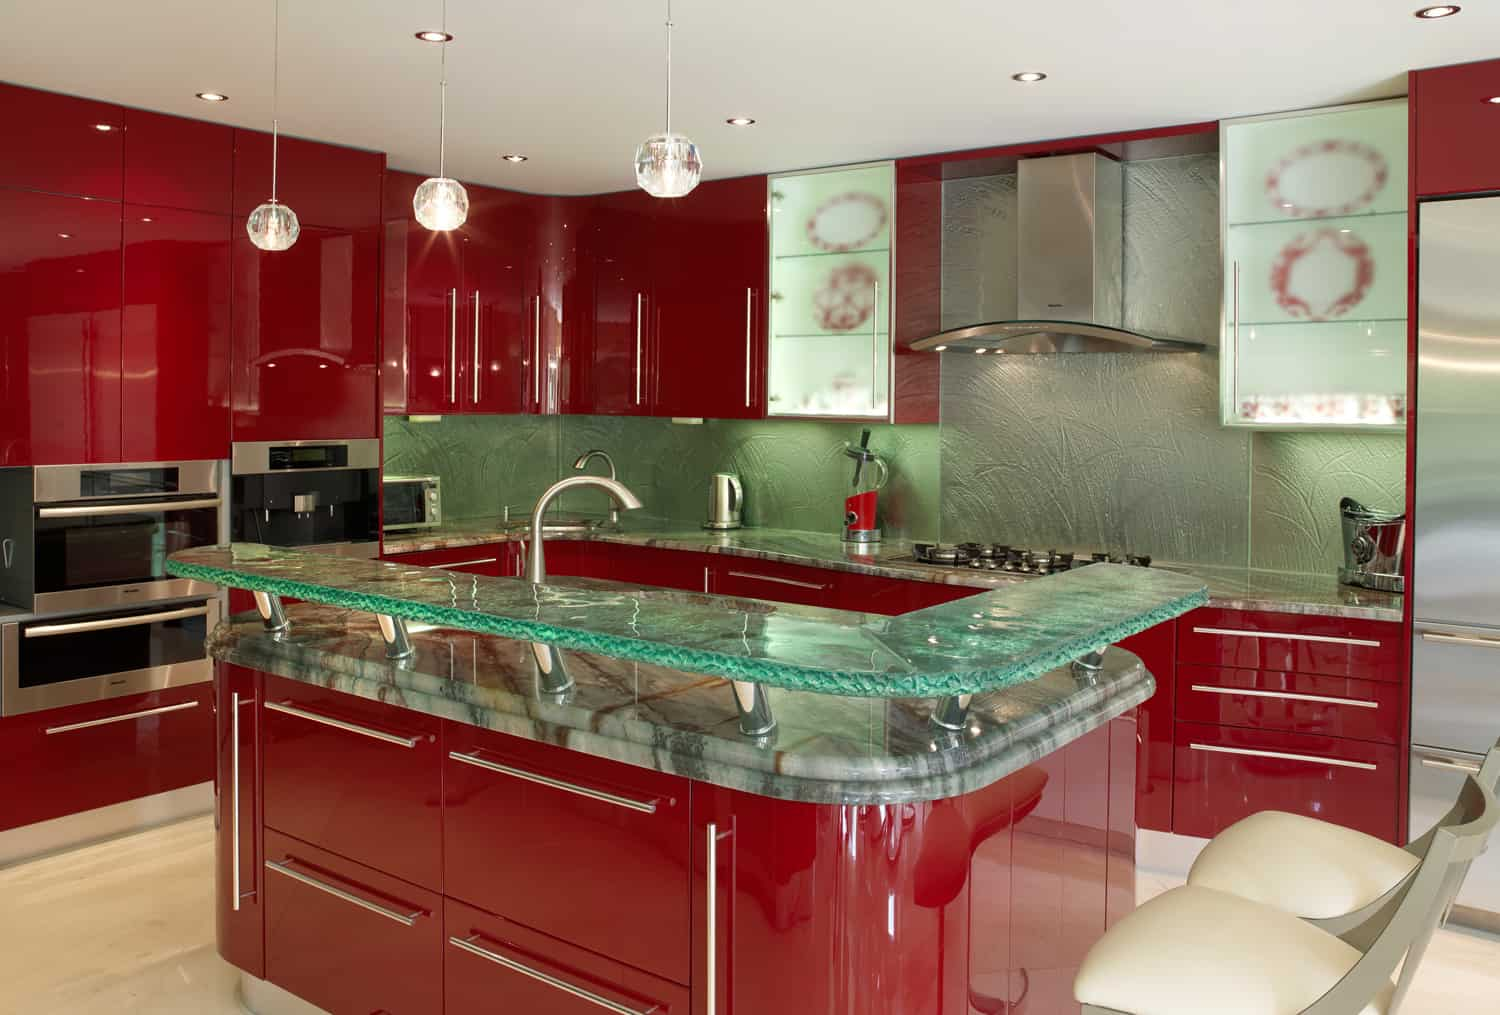 Modern kitchen countertops from unusual materials 30 ideas for Countertop decor ideas